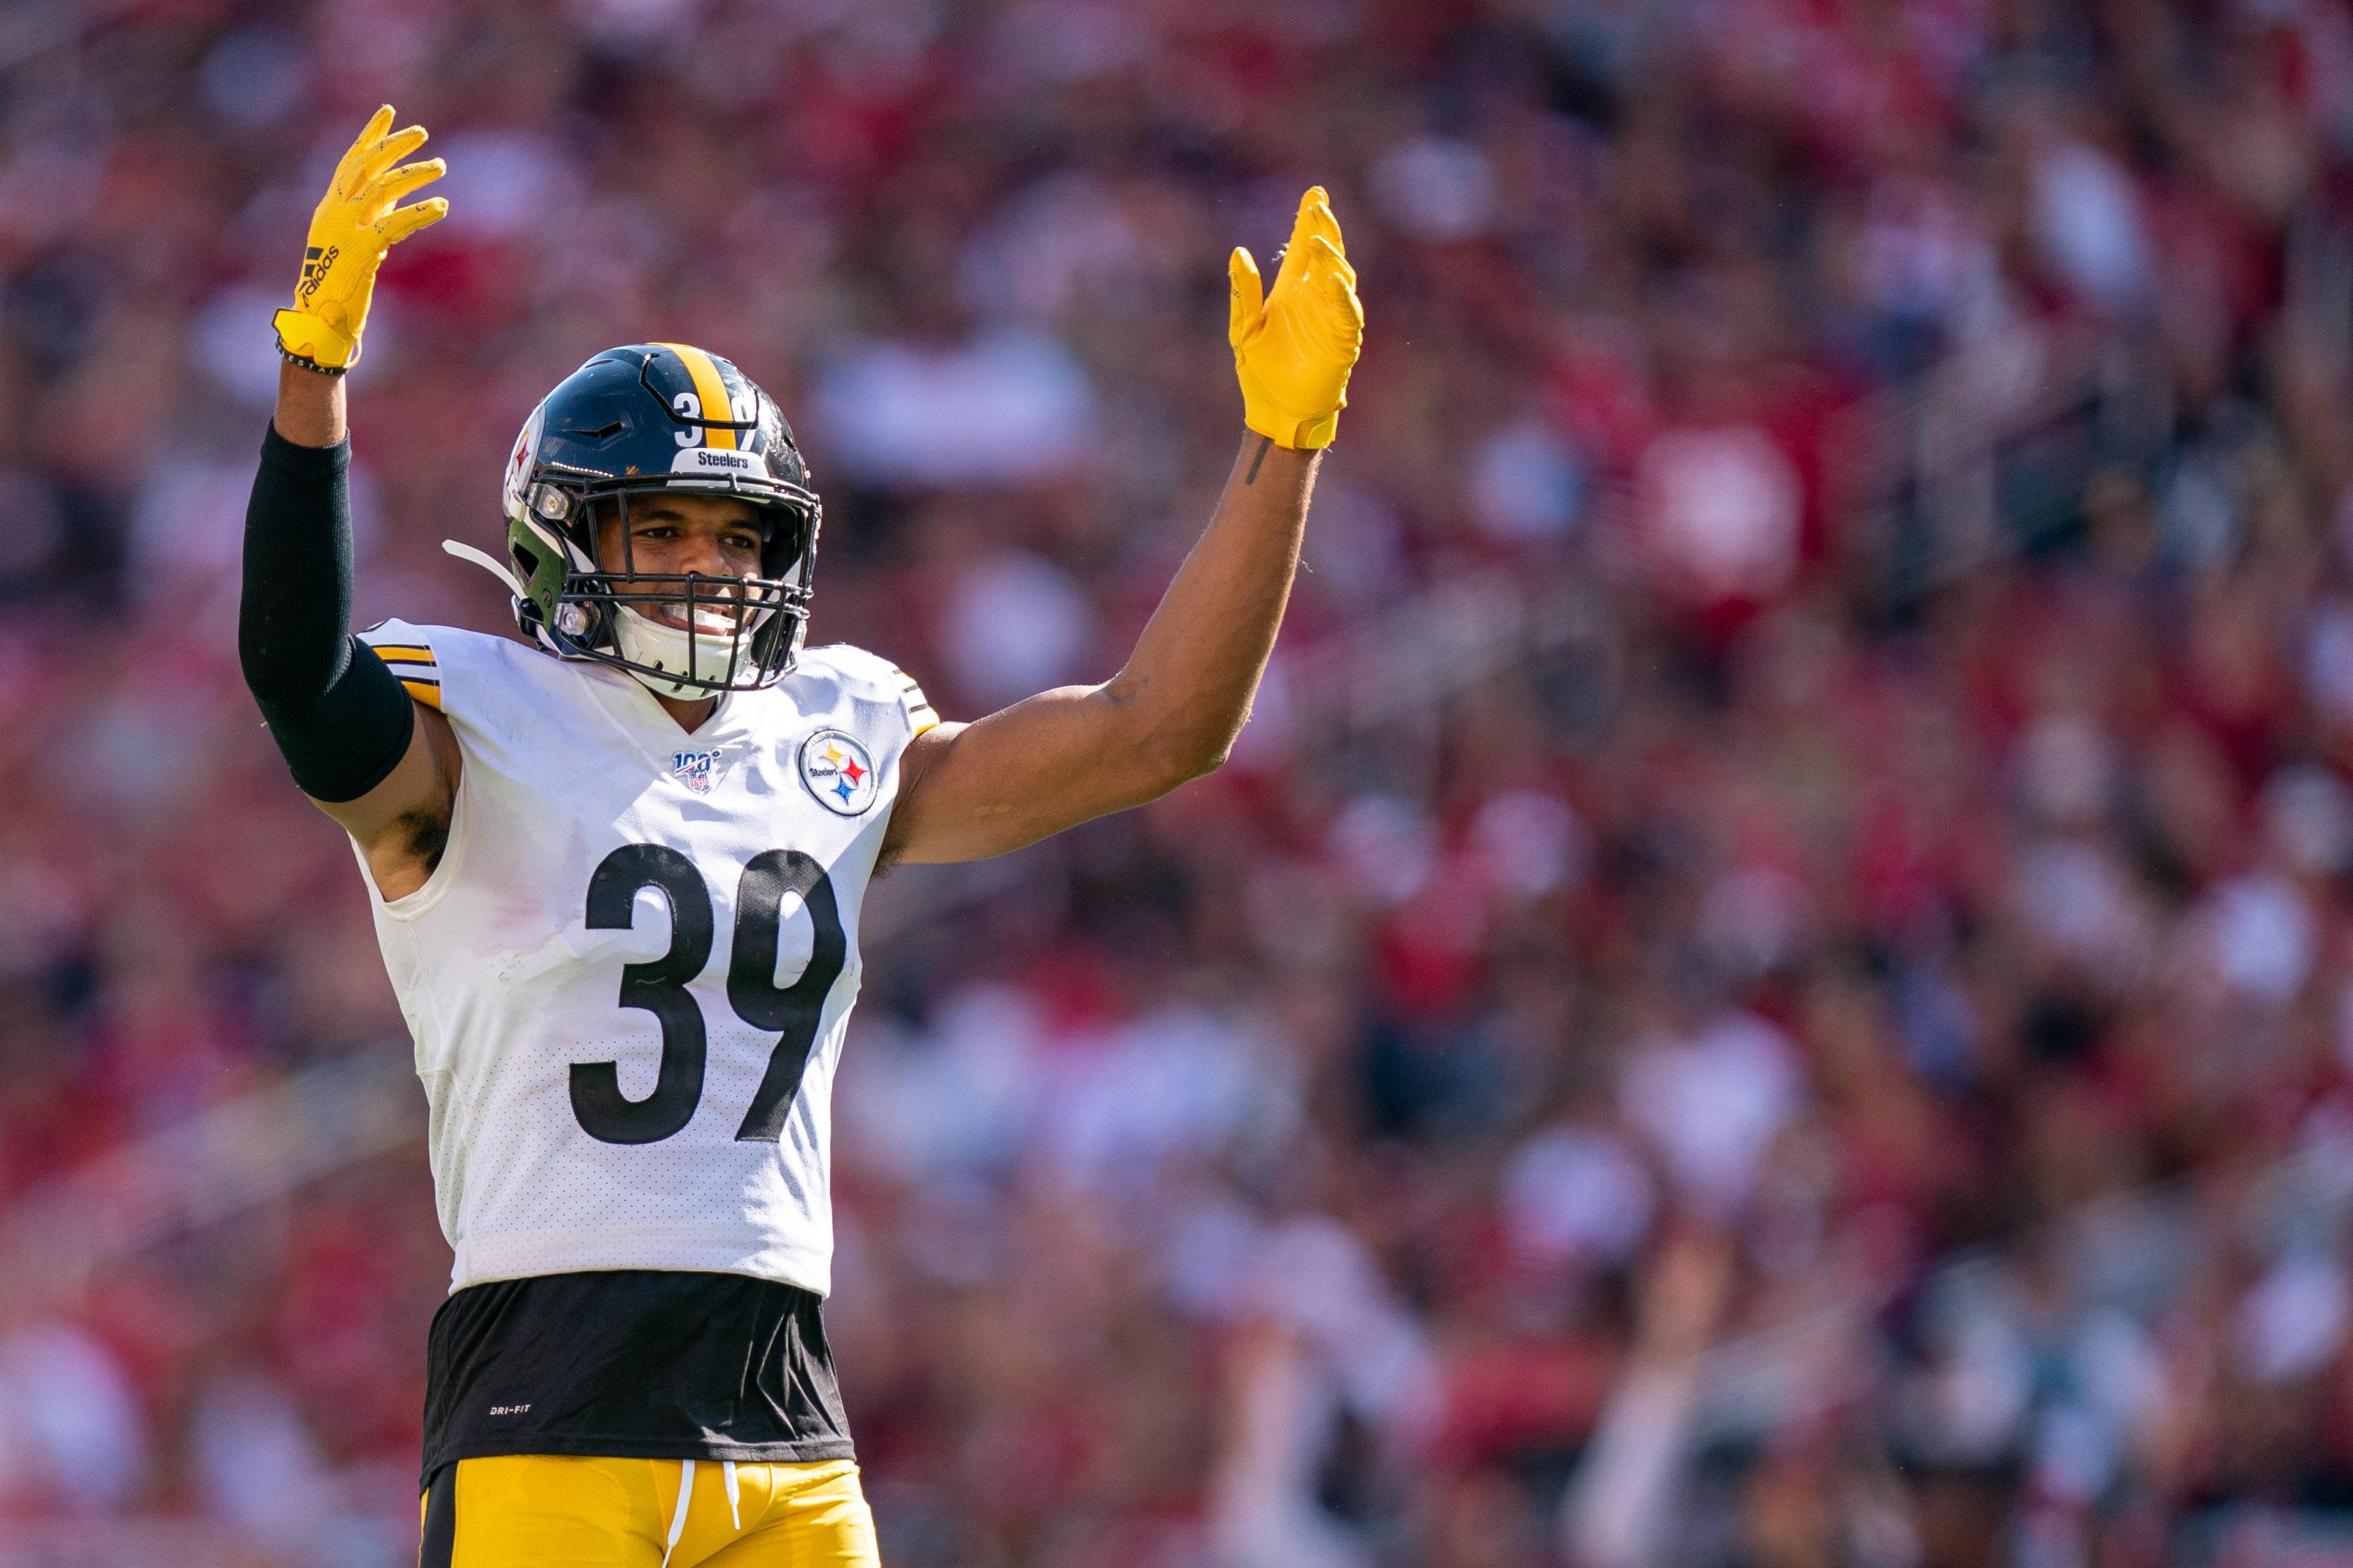 NFL: Pittsburgh Steelers at San Francisco 49ers